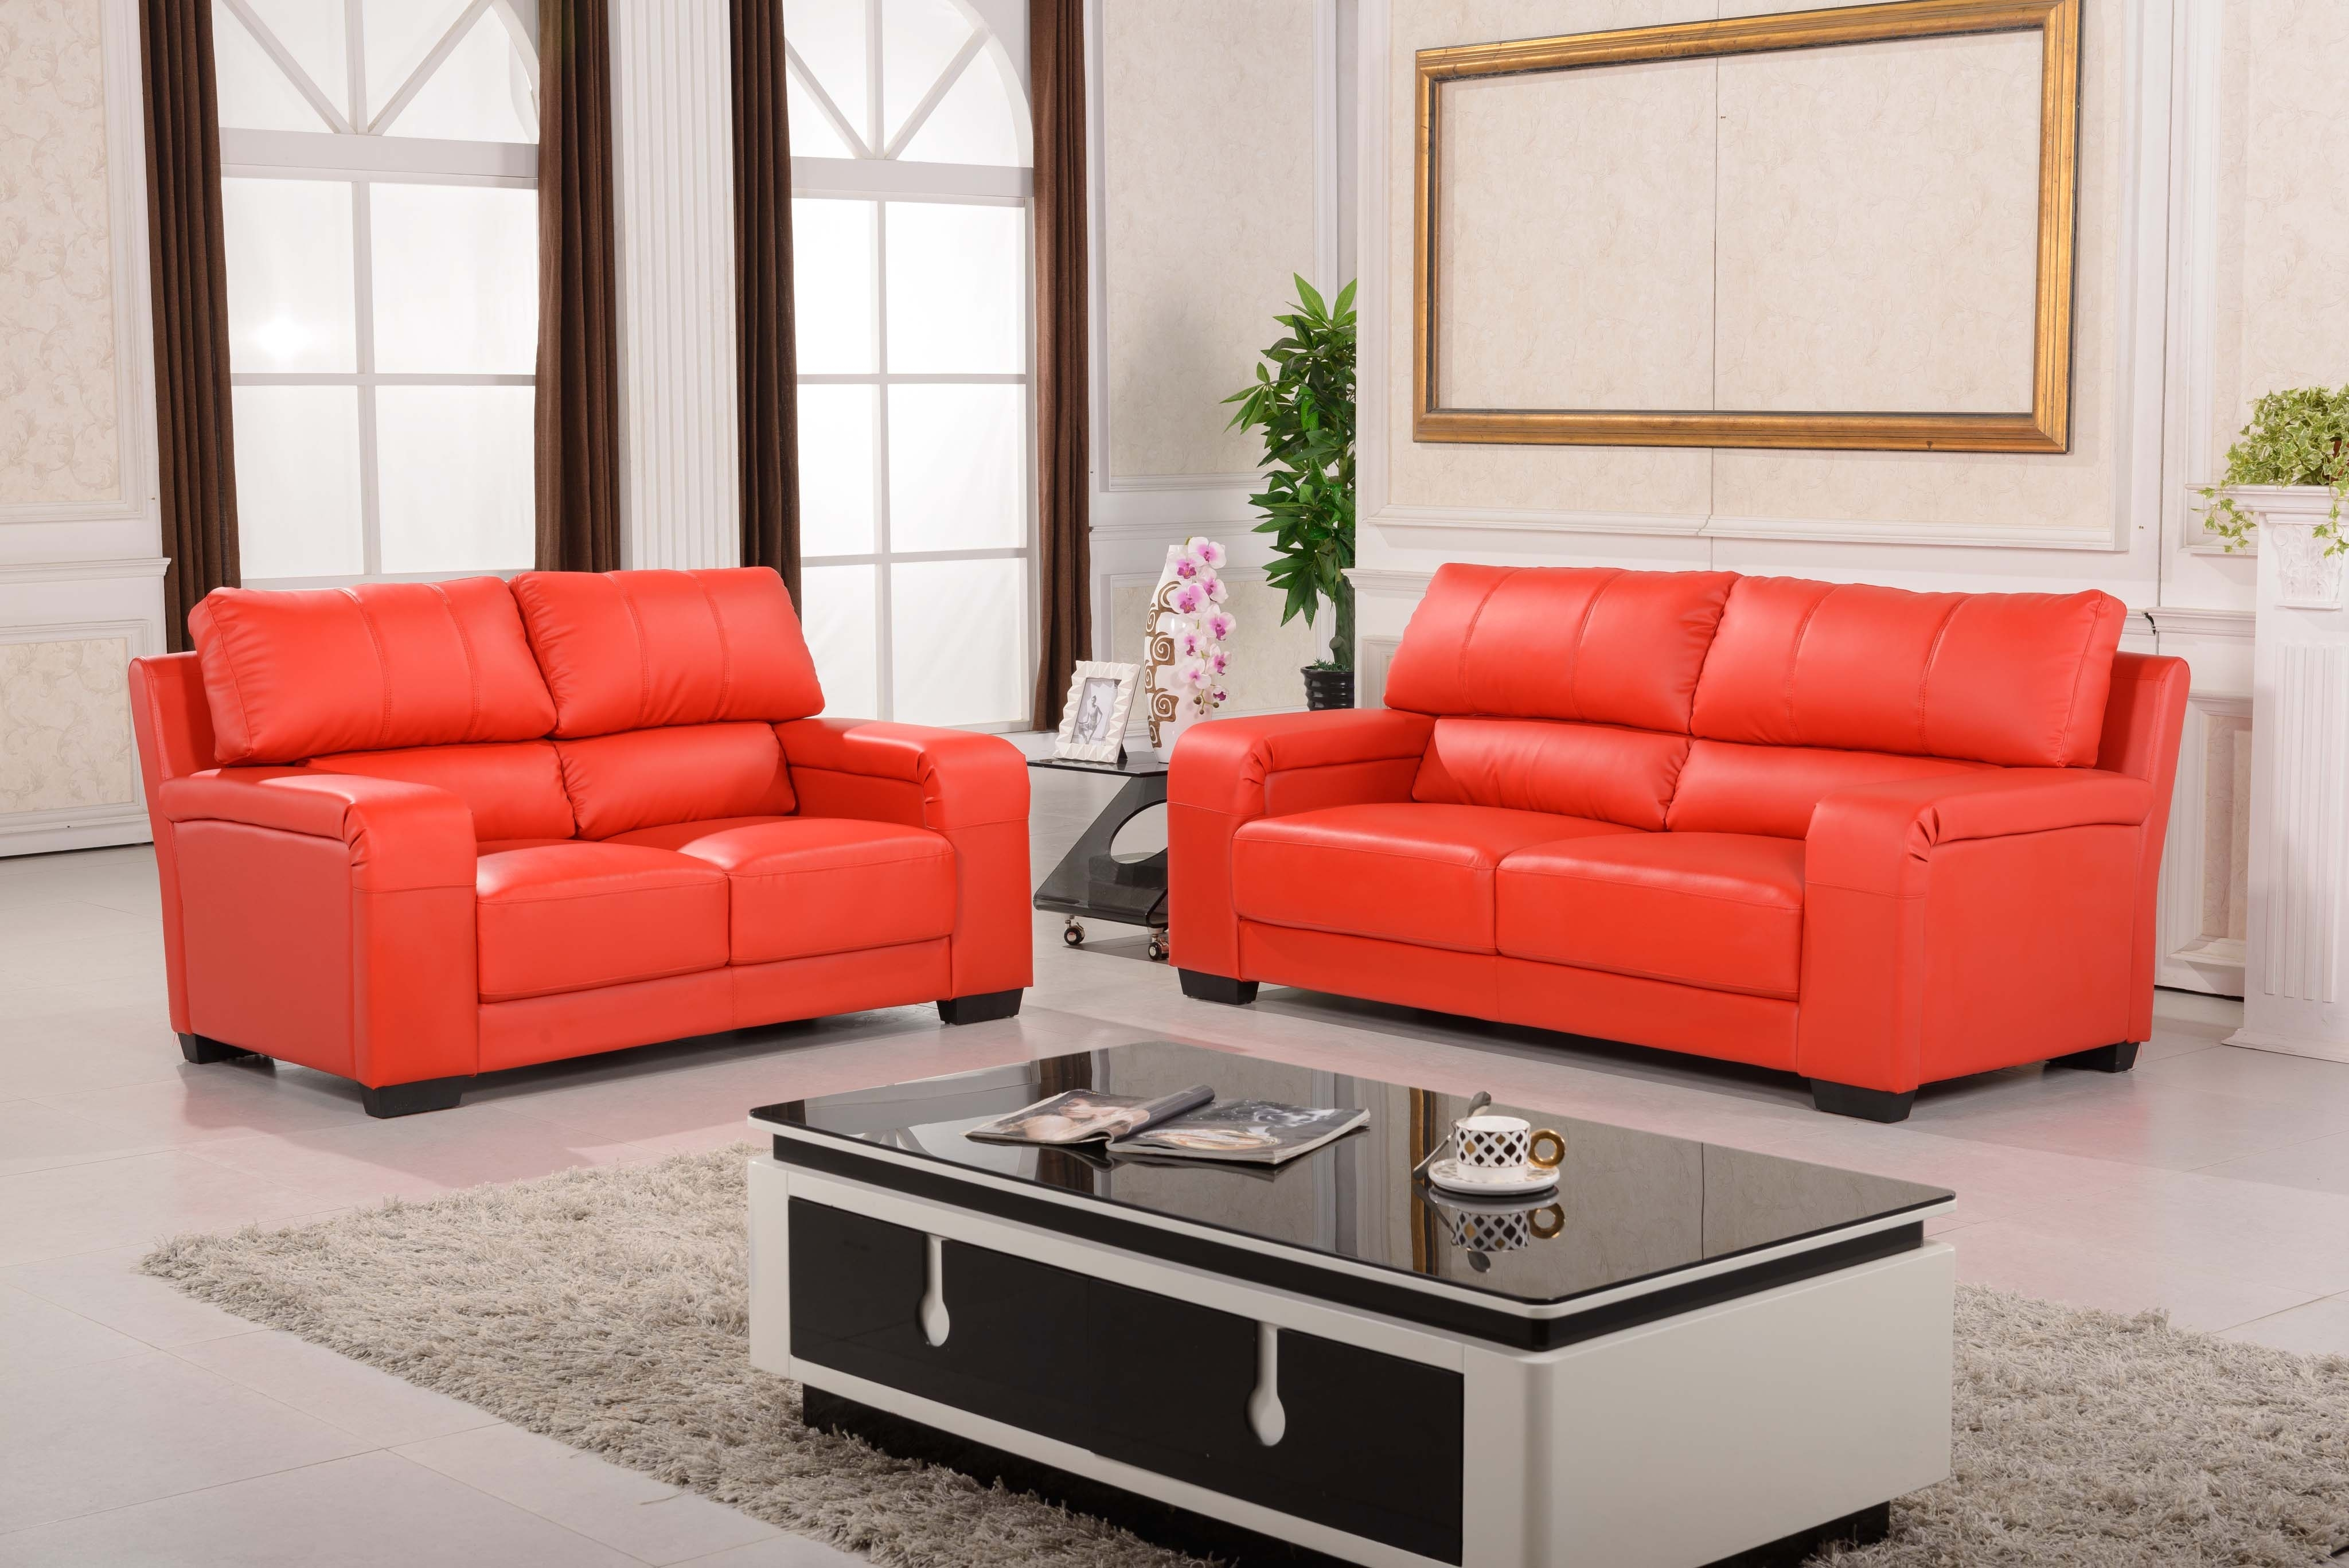 best sofa stores diferencia entre y canape 10 43 of orange county ca sectional sofas